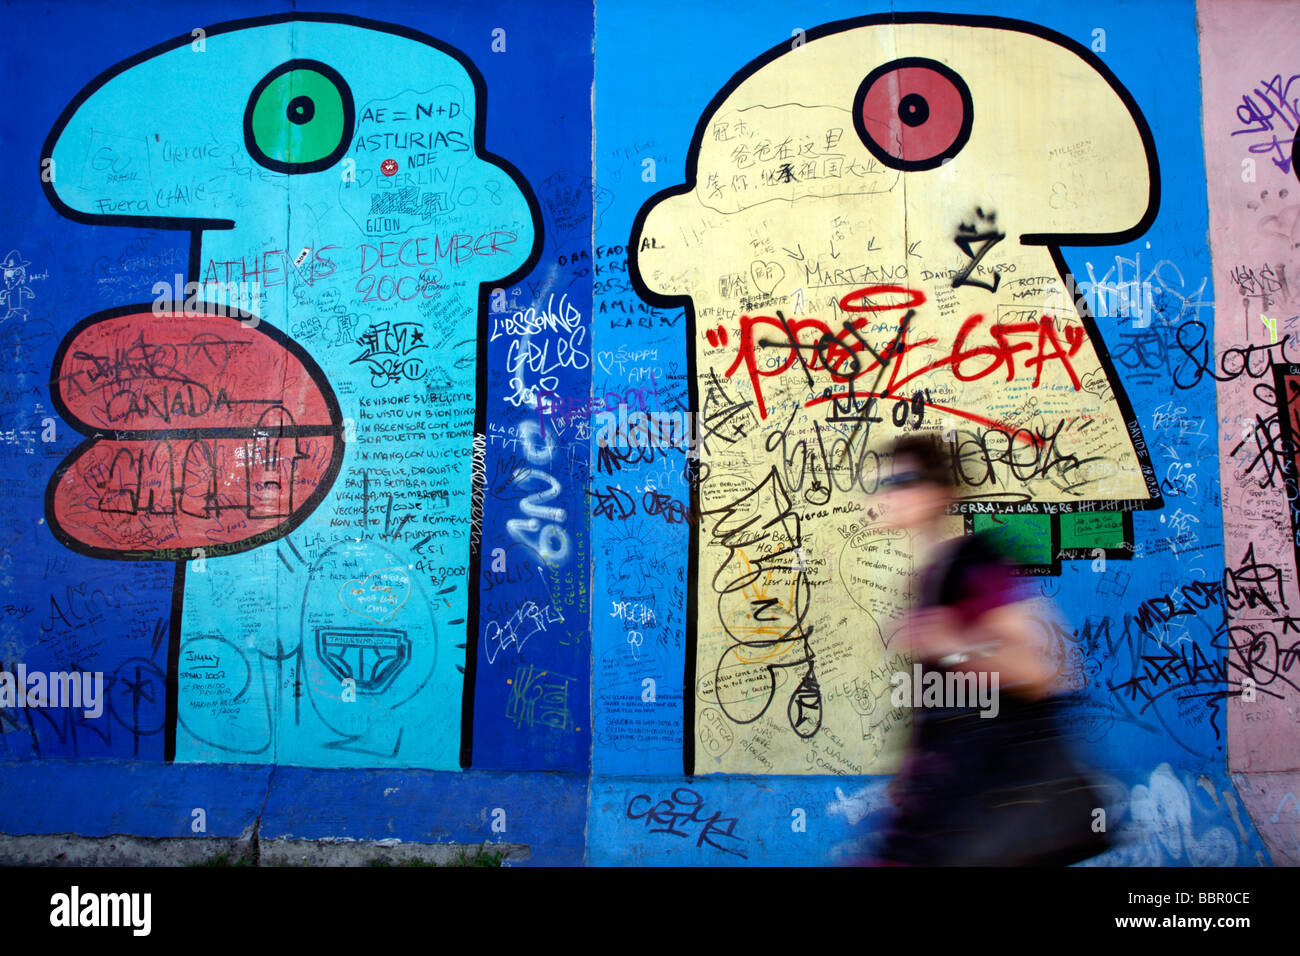 Berlin Wall Germany - Stock Image